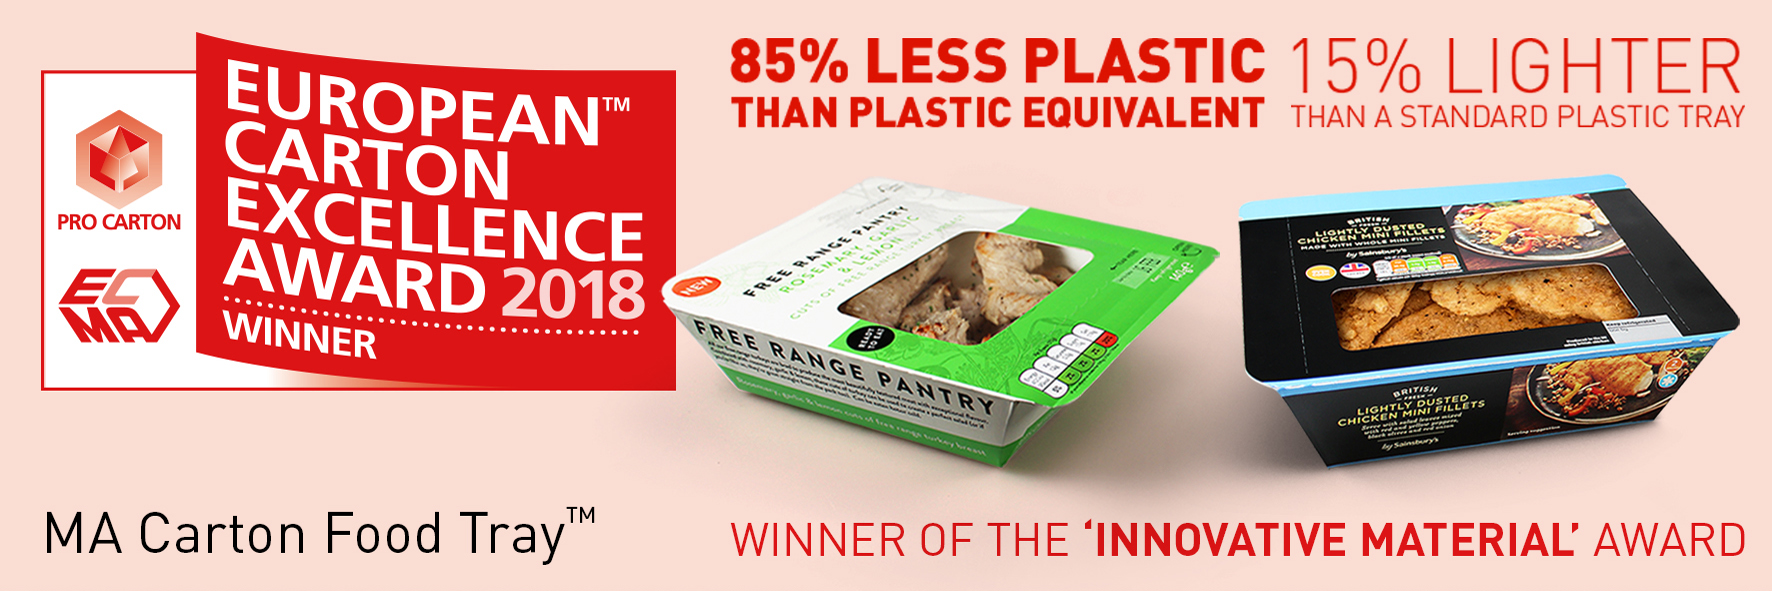 Rapid Action Packaging win at European Carton Excellence Awards